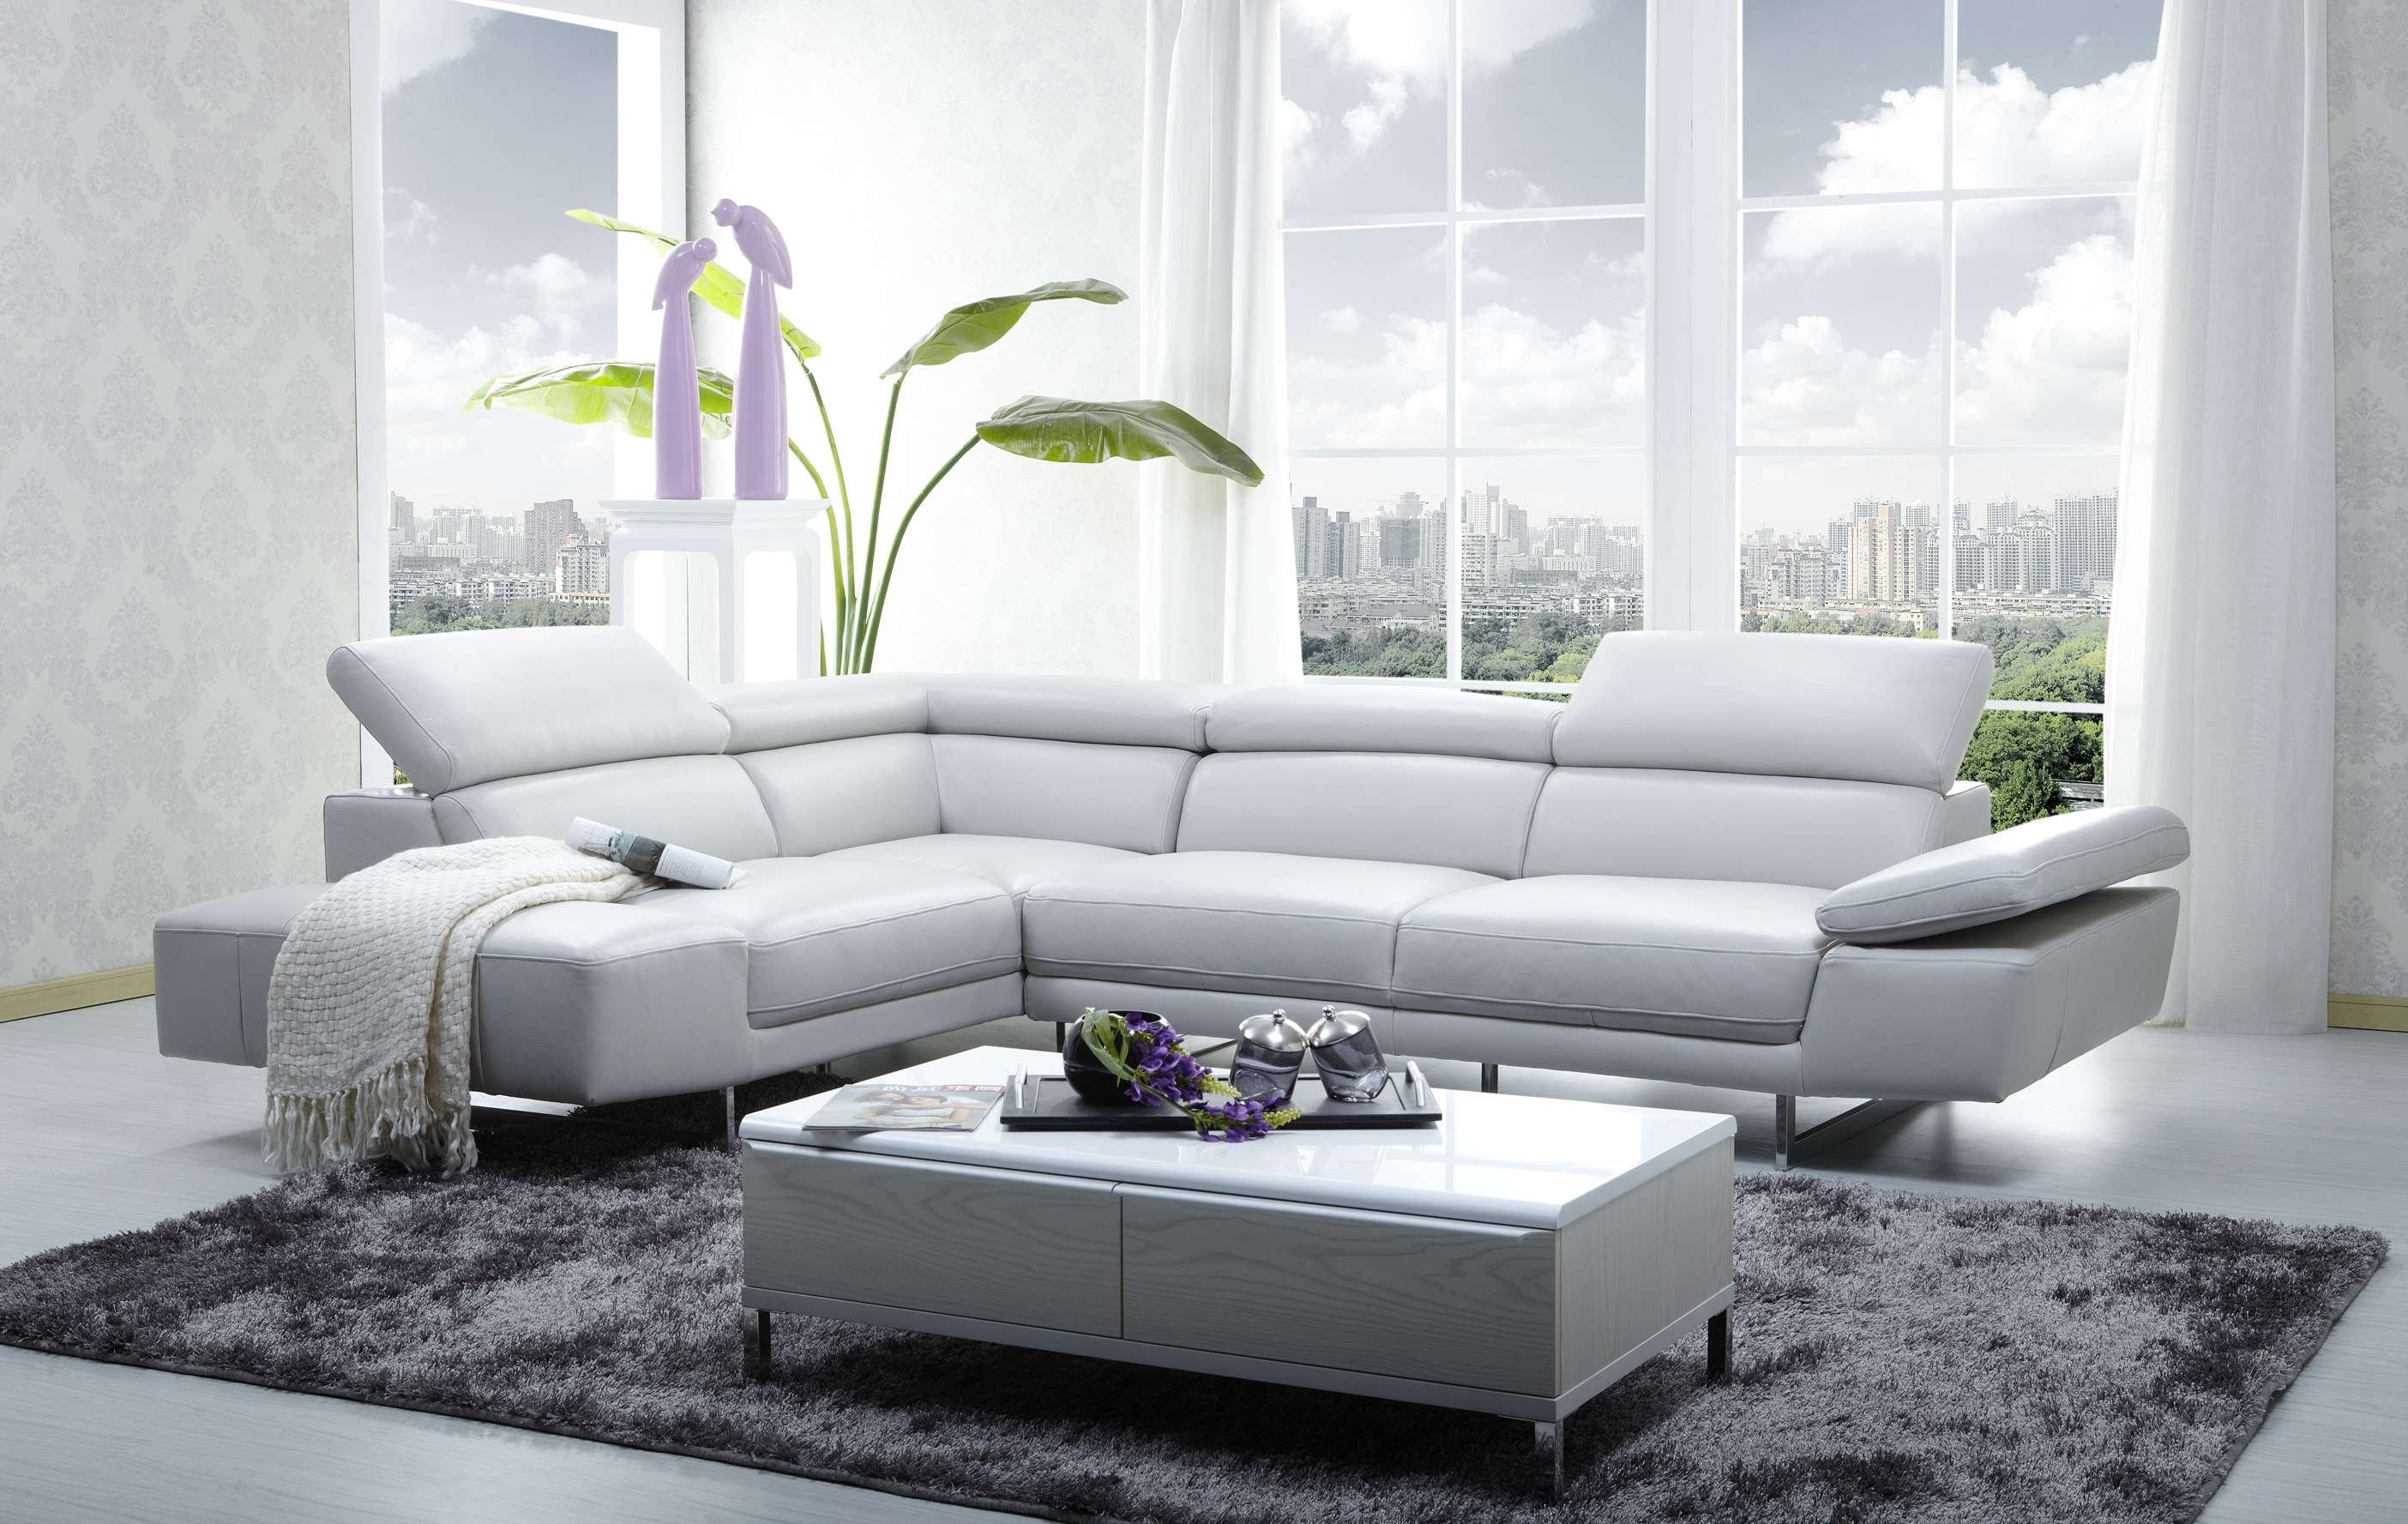 Fashionable 1717 Italian Leather Modern Sectional Sofa With Regard To Modern Sectional Sofas (View 16 of 20)